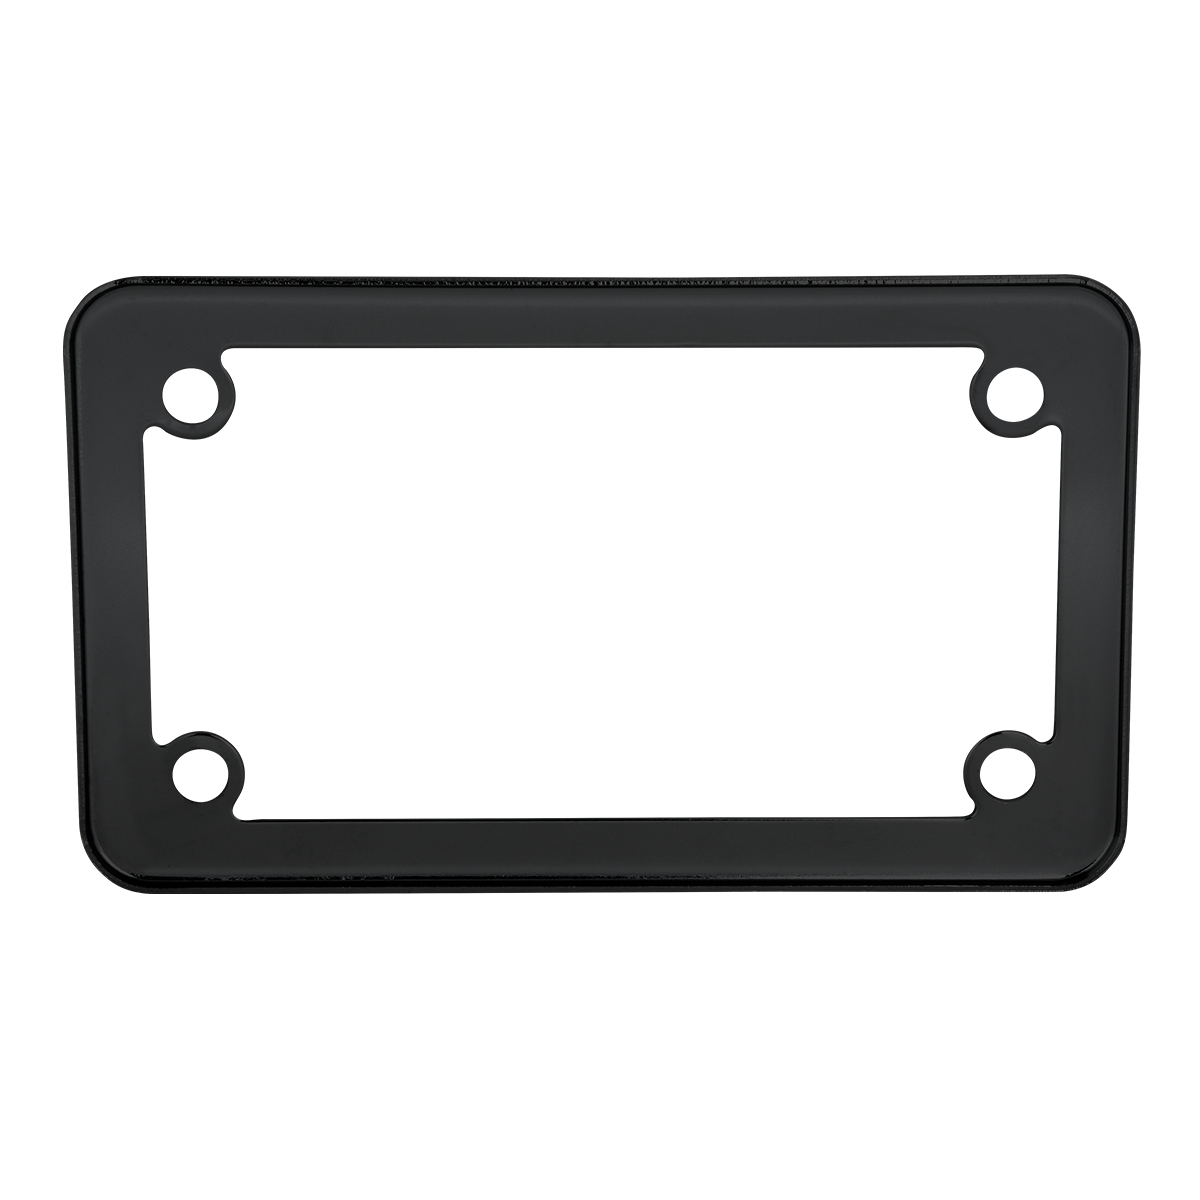 60394 Motorcycle License Plate Frames